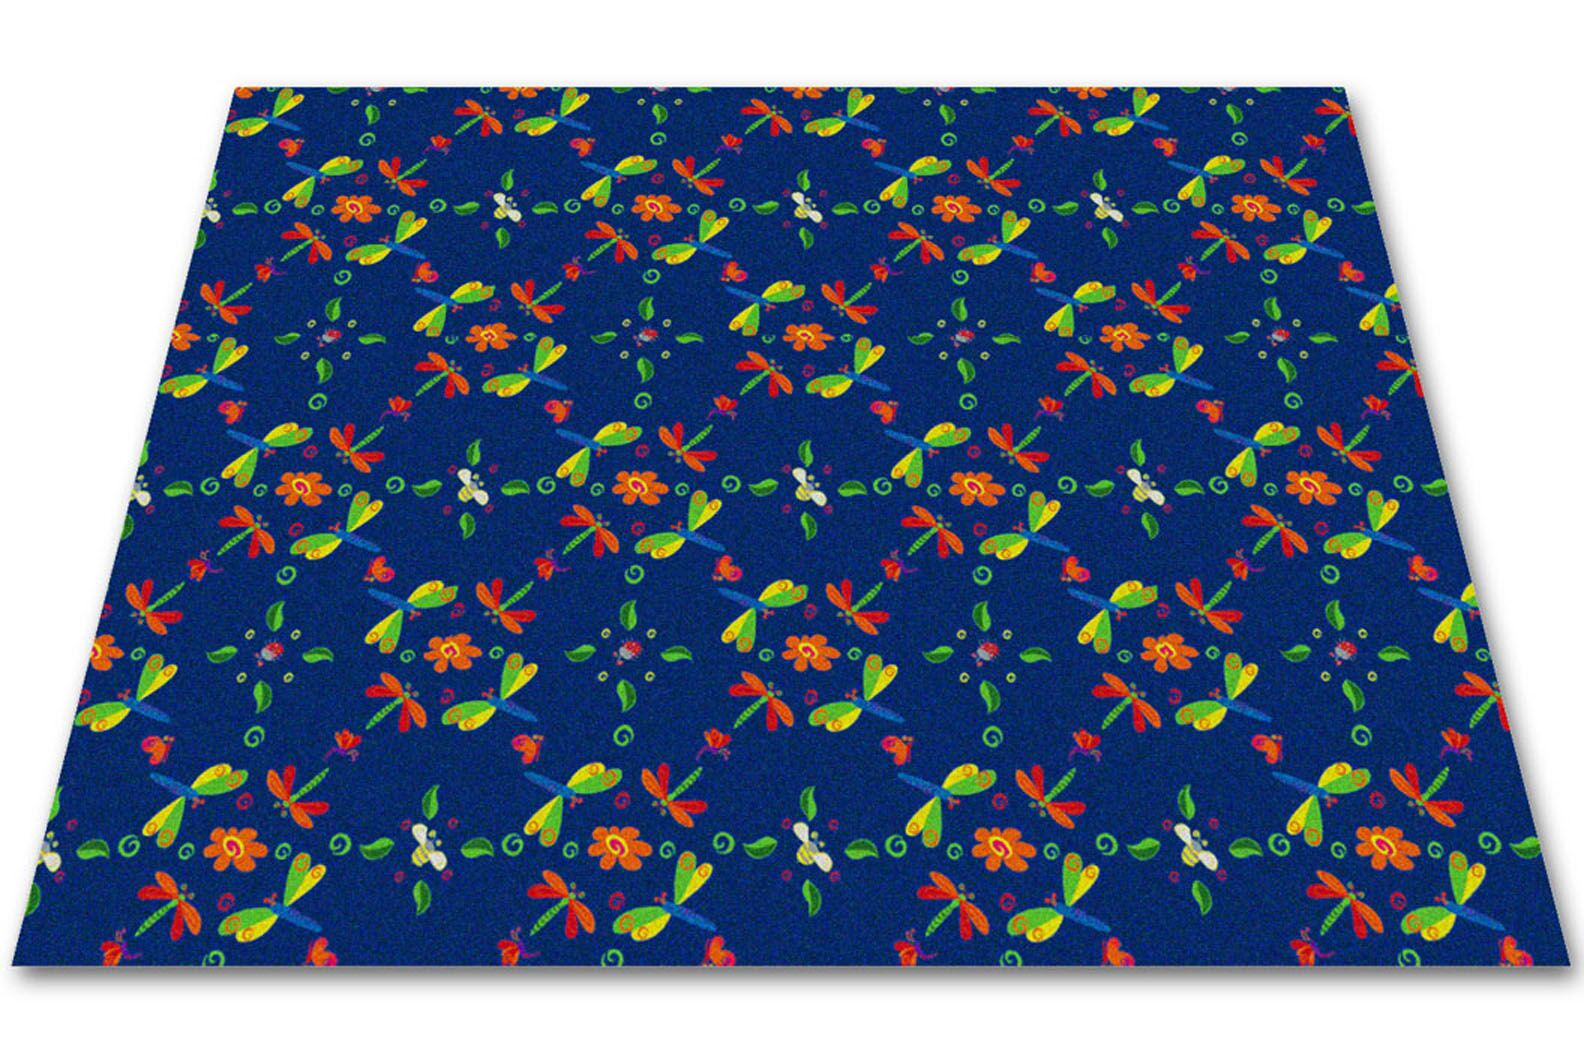 Dragonflies Play Area Rug Rug Size: Square 12'